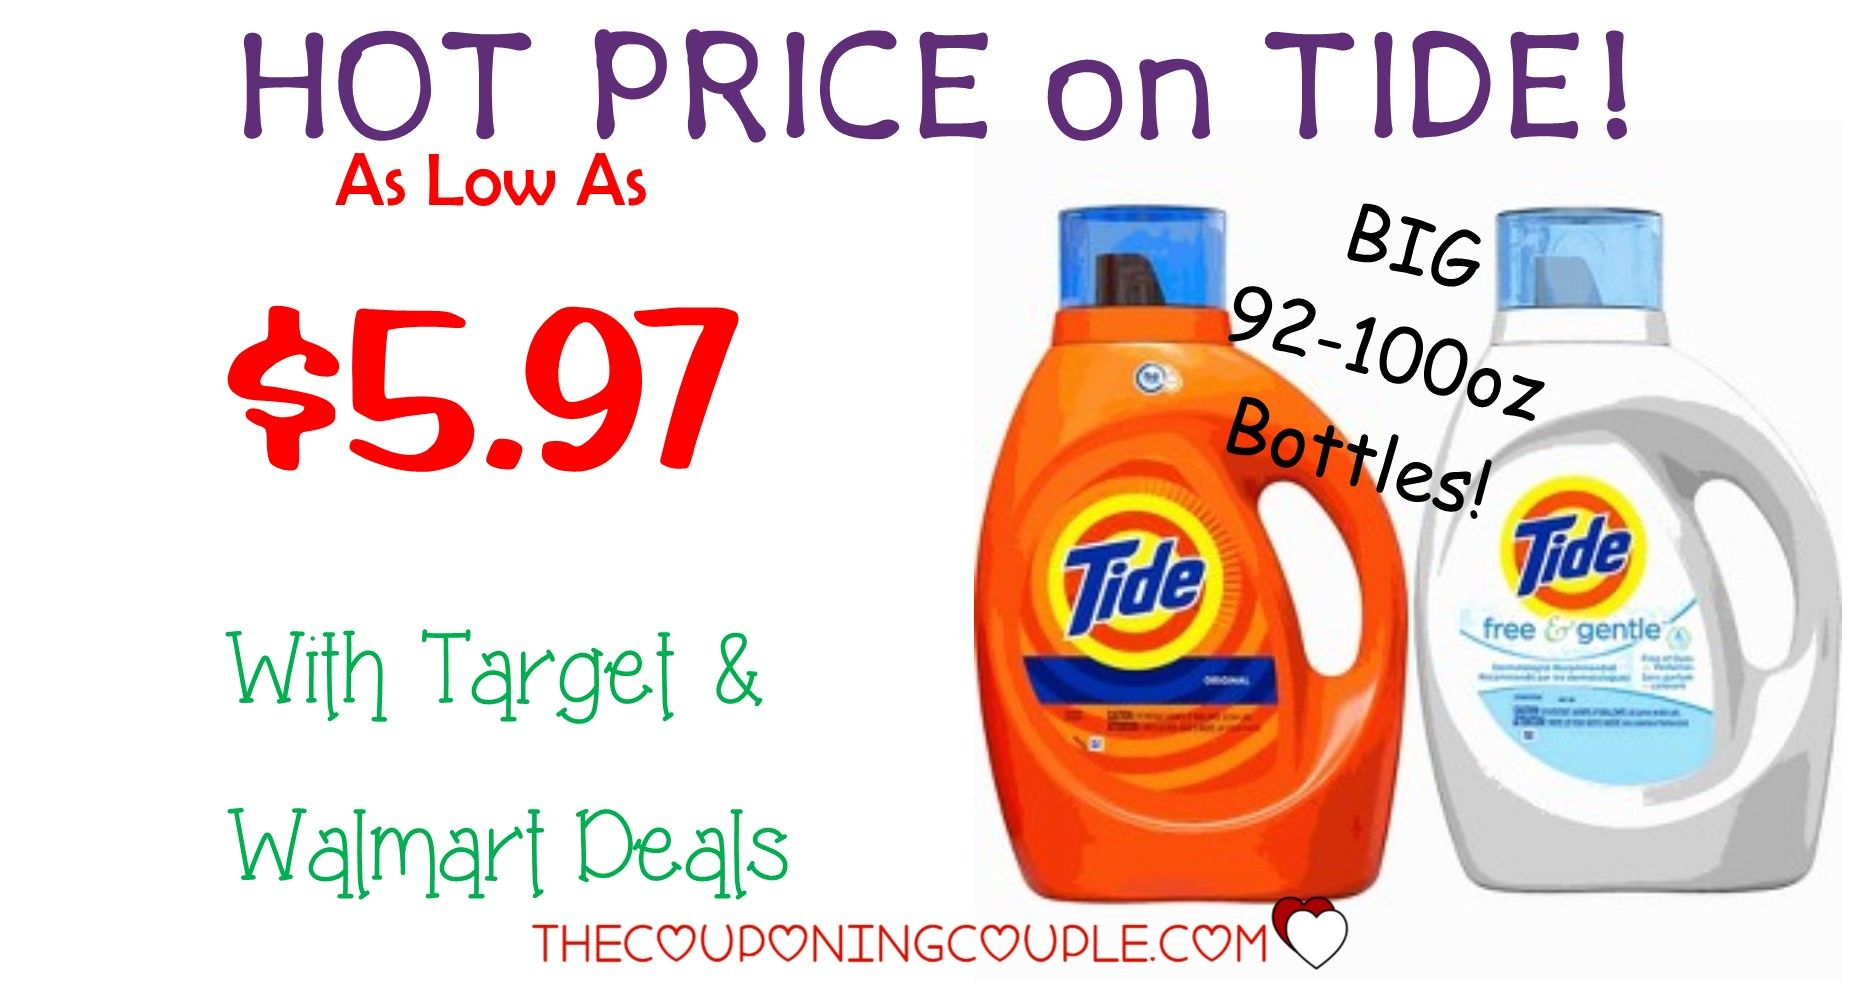 Tide Liquid Laundry Detergent As Low As 5 97 For Big Bottles At